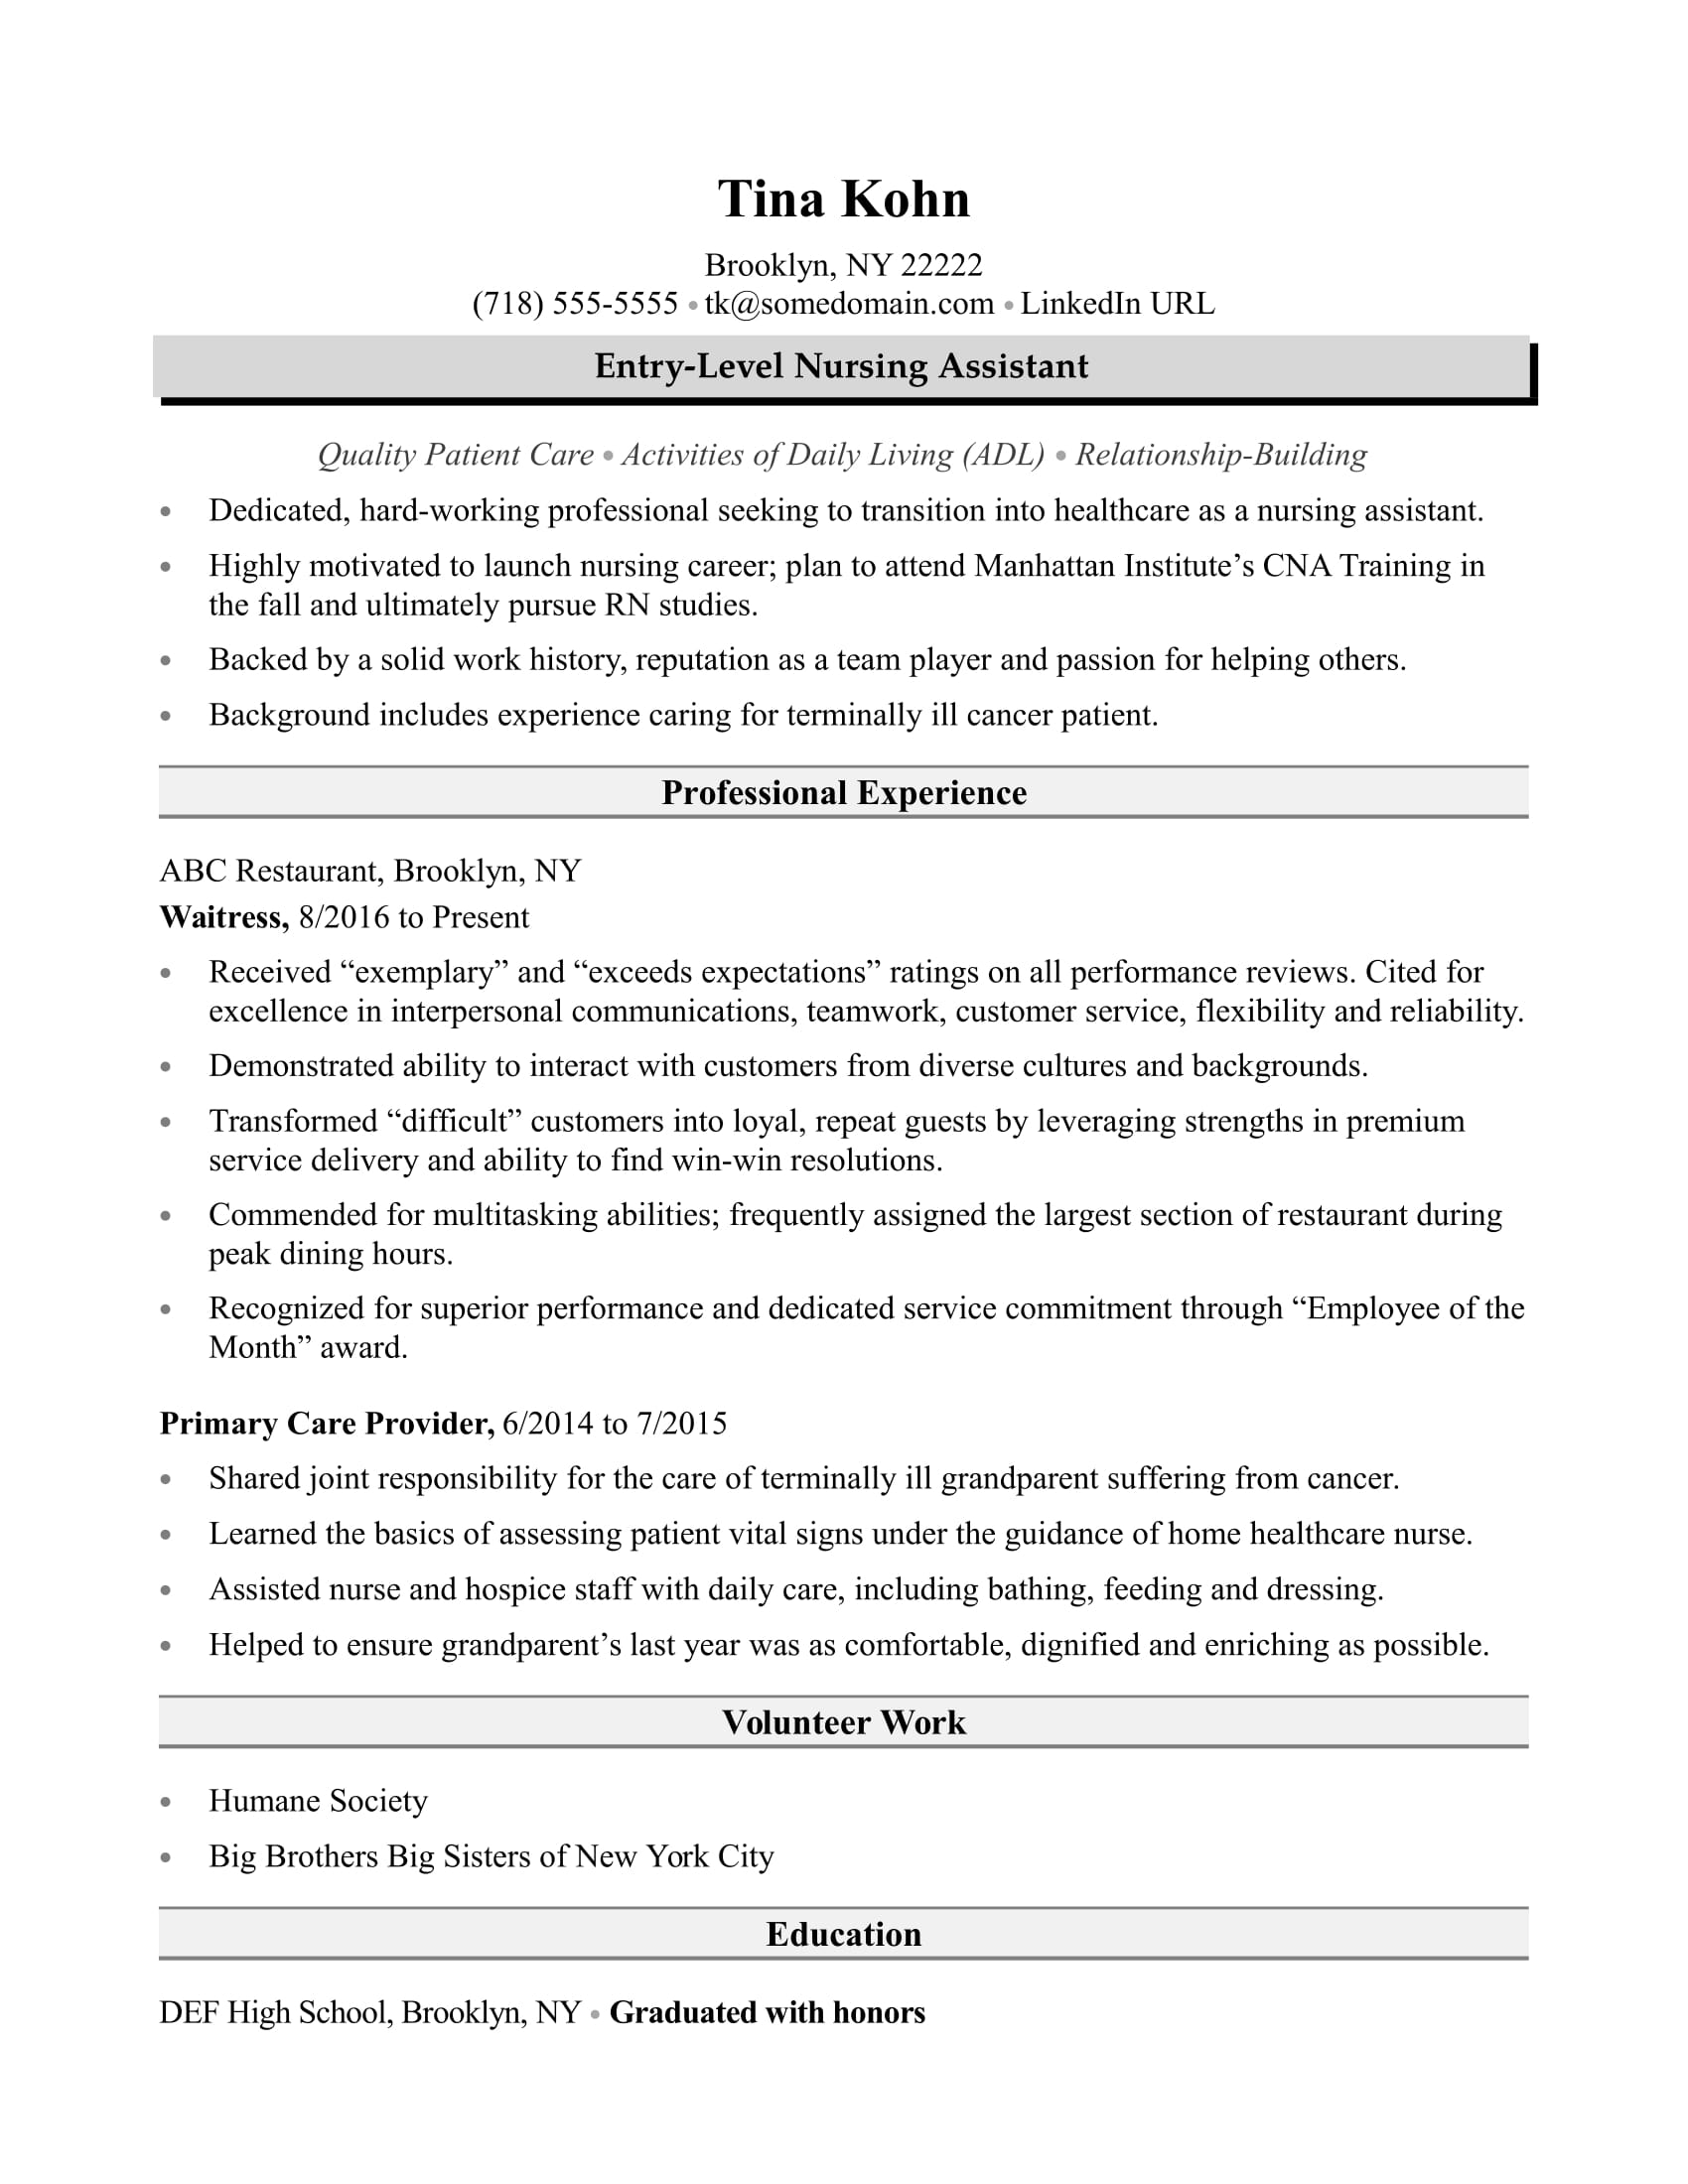 nursing assistant resume sample monster entry level certified field service examples Resume Entry Level Certified Nursing Assistant Resume